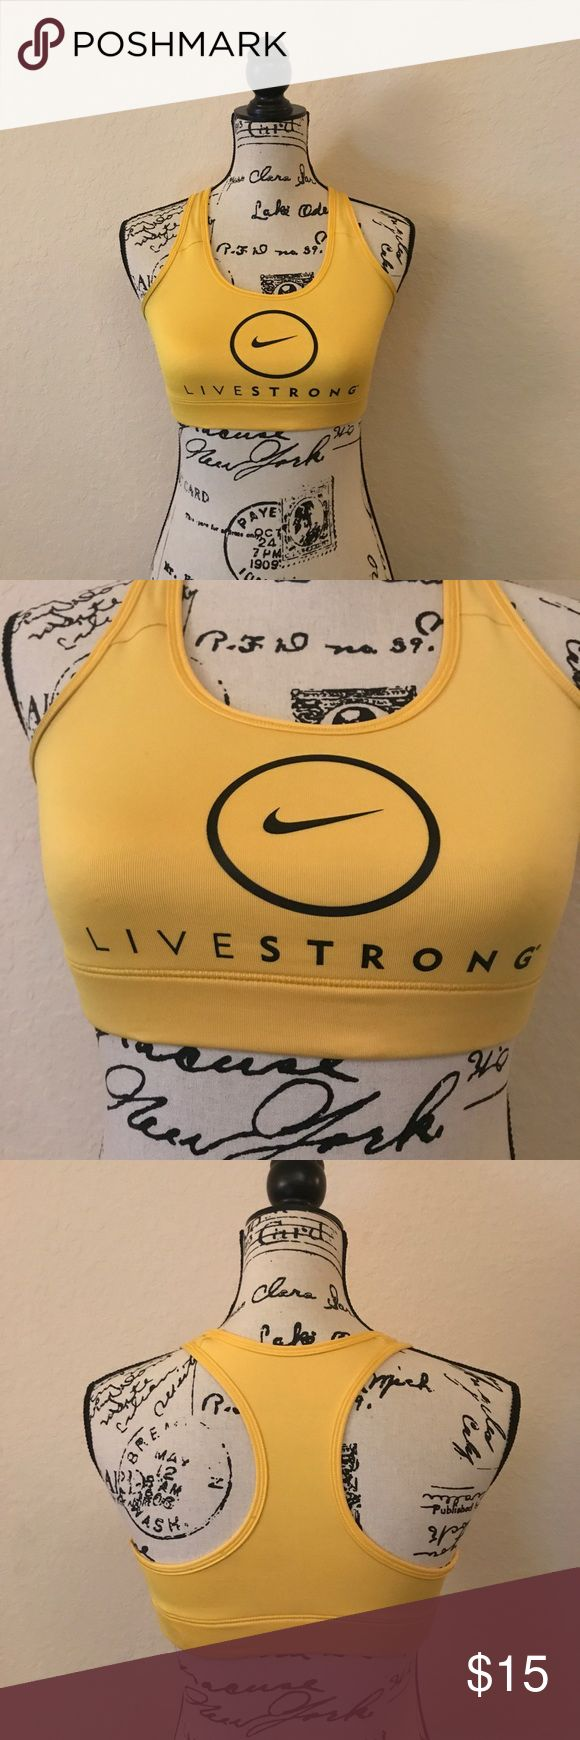 Nike Livestrong sports bra Nike yellow Livestrong sports bra size small. Nike Intimates & Sleepwear Bras